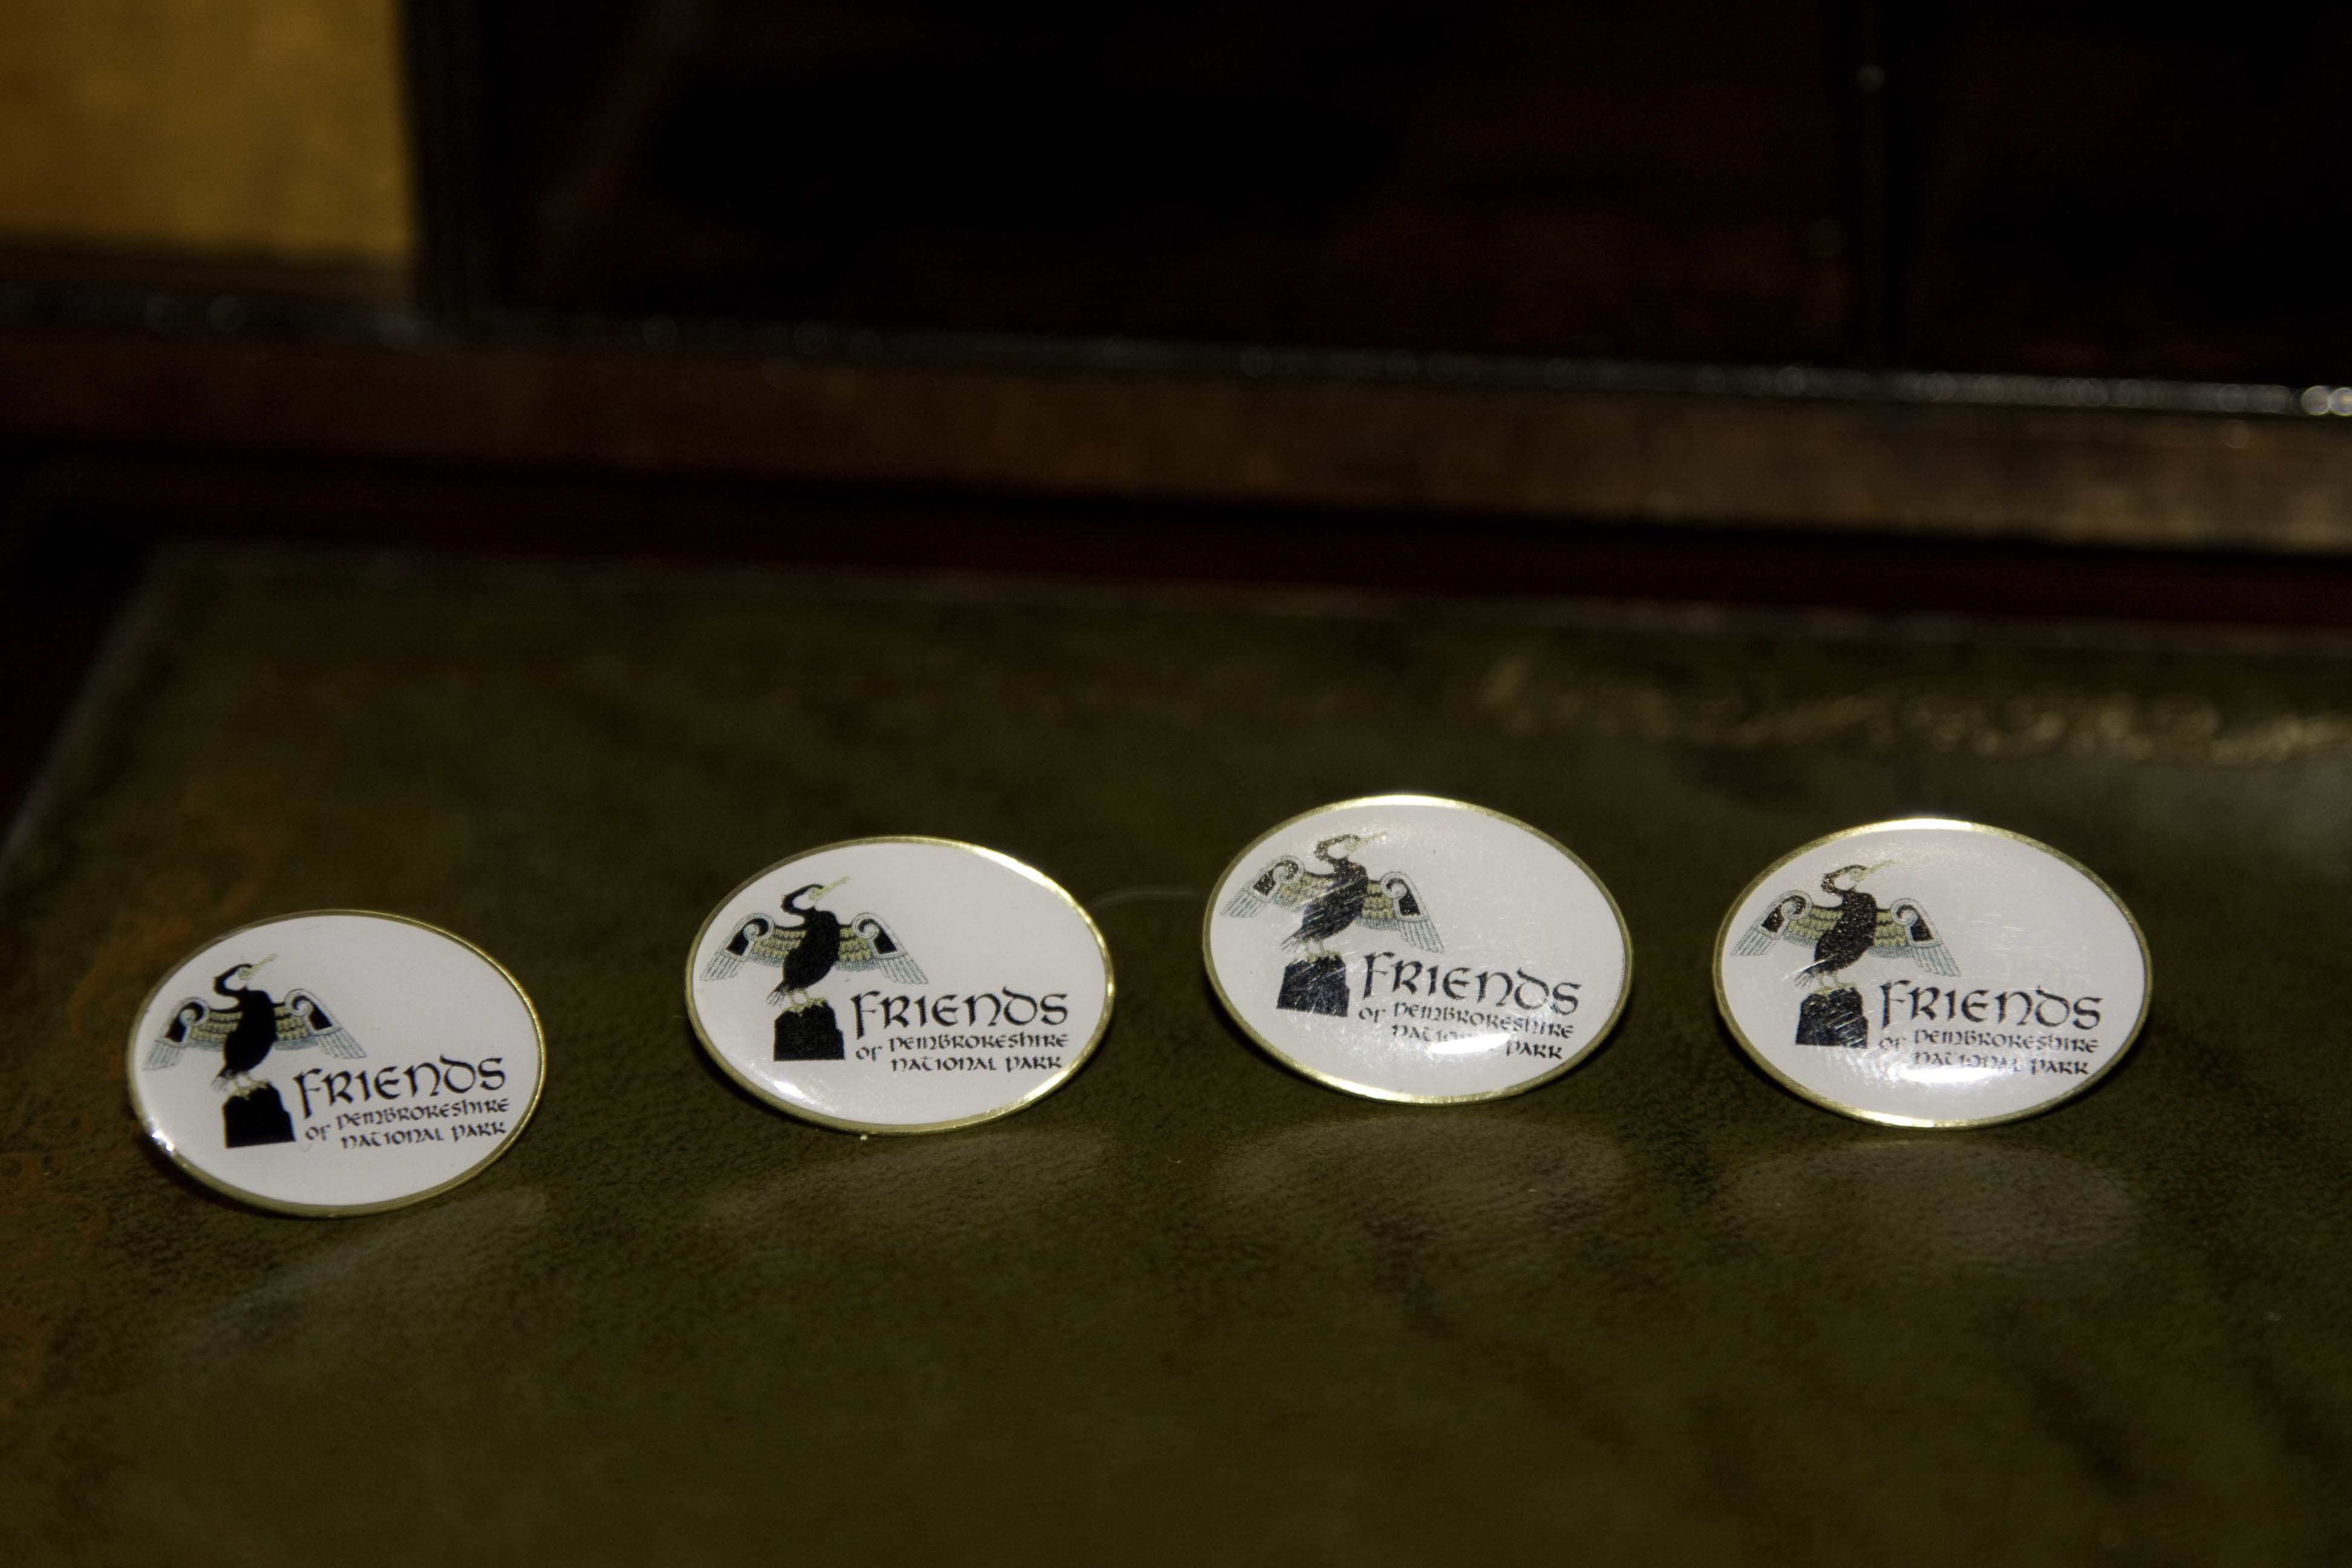 image of friends lapel badges